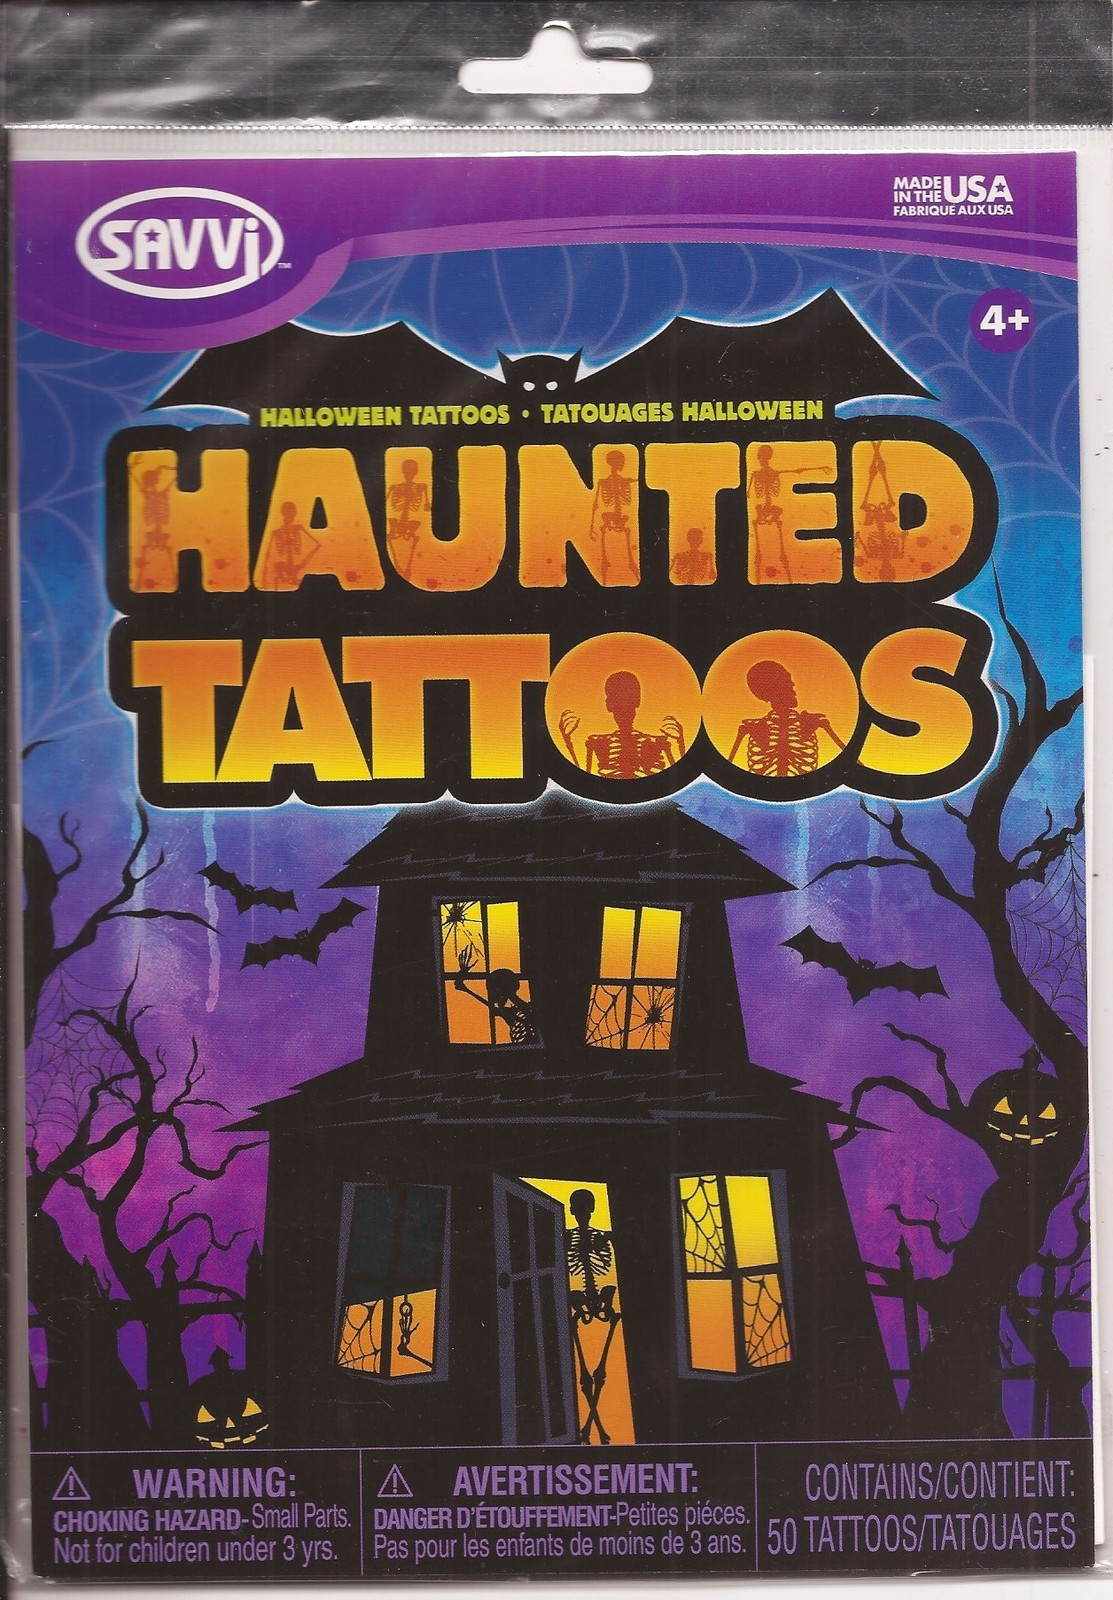 Primary image for Savvi Haunted Tattoos Lot of 3 Horror Monster Halloween Accessories